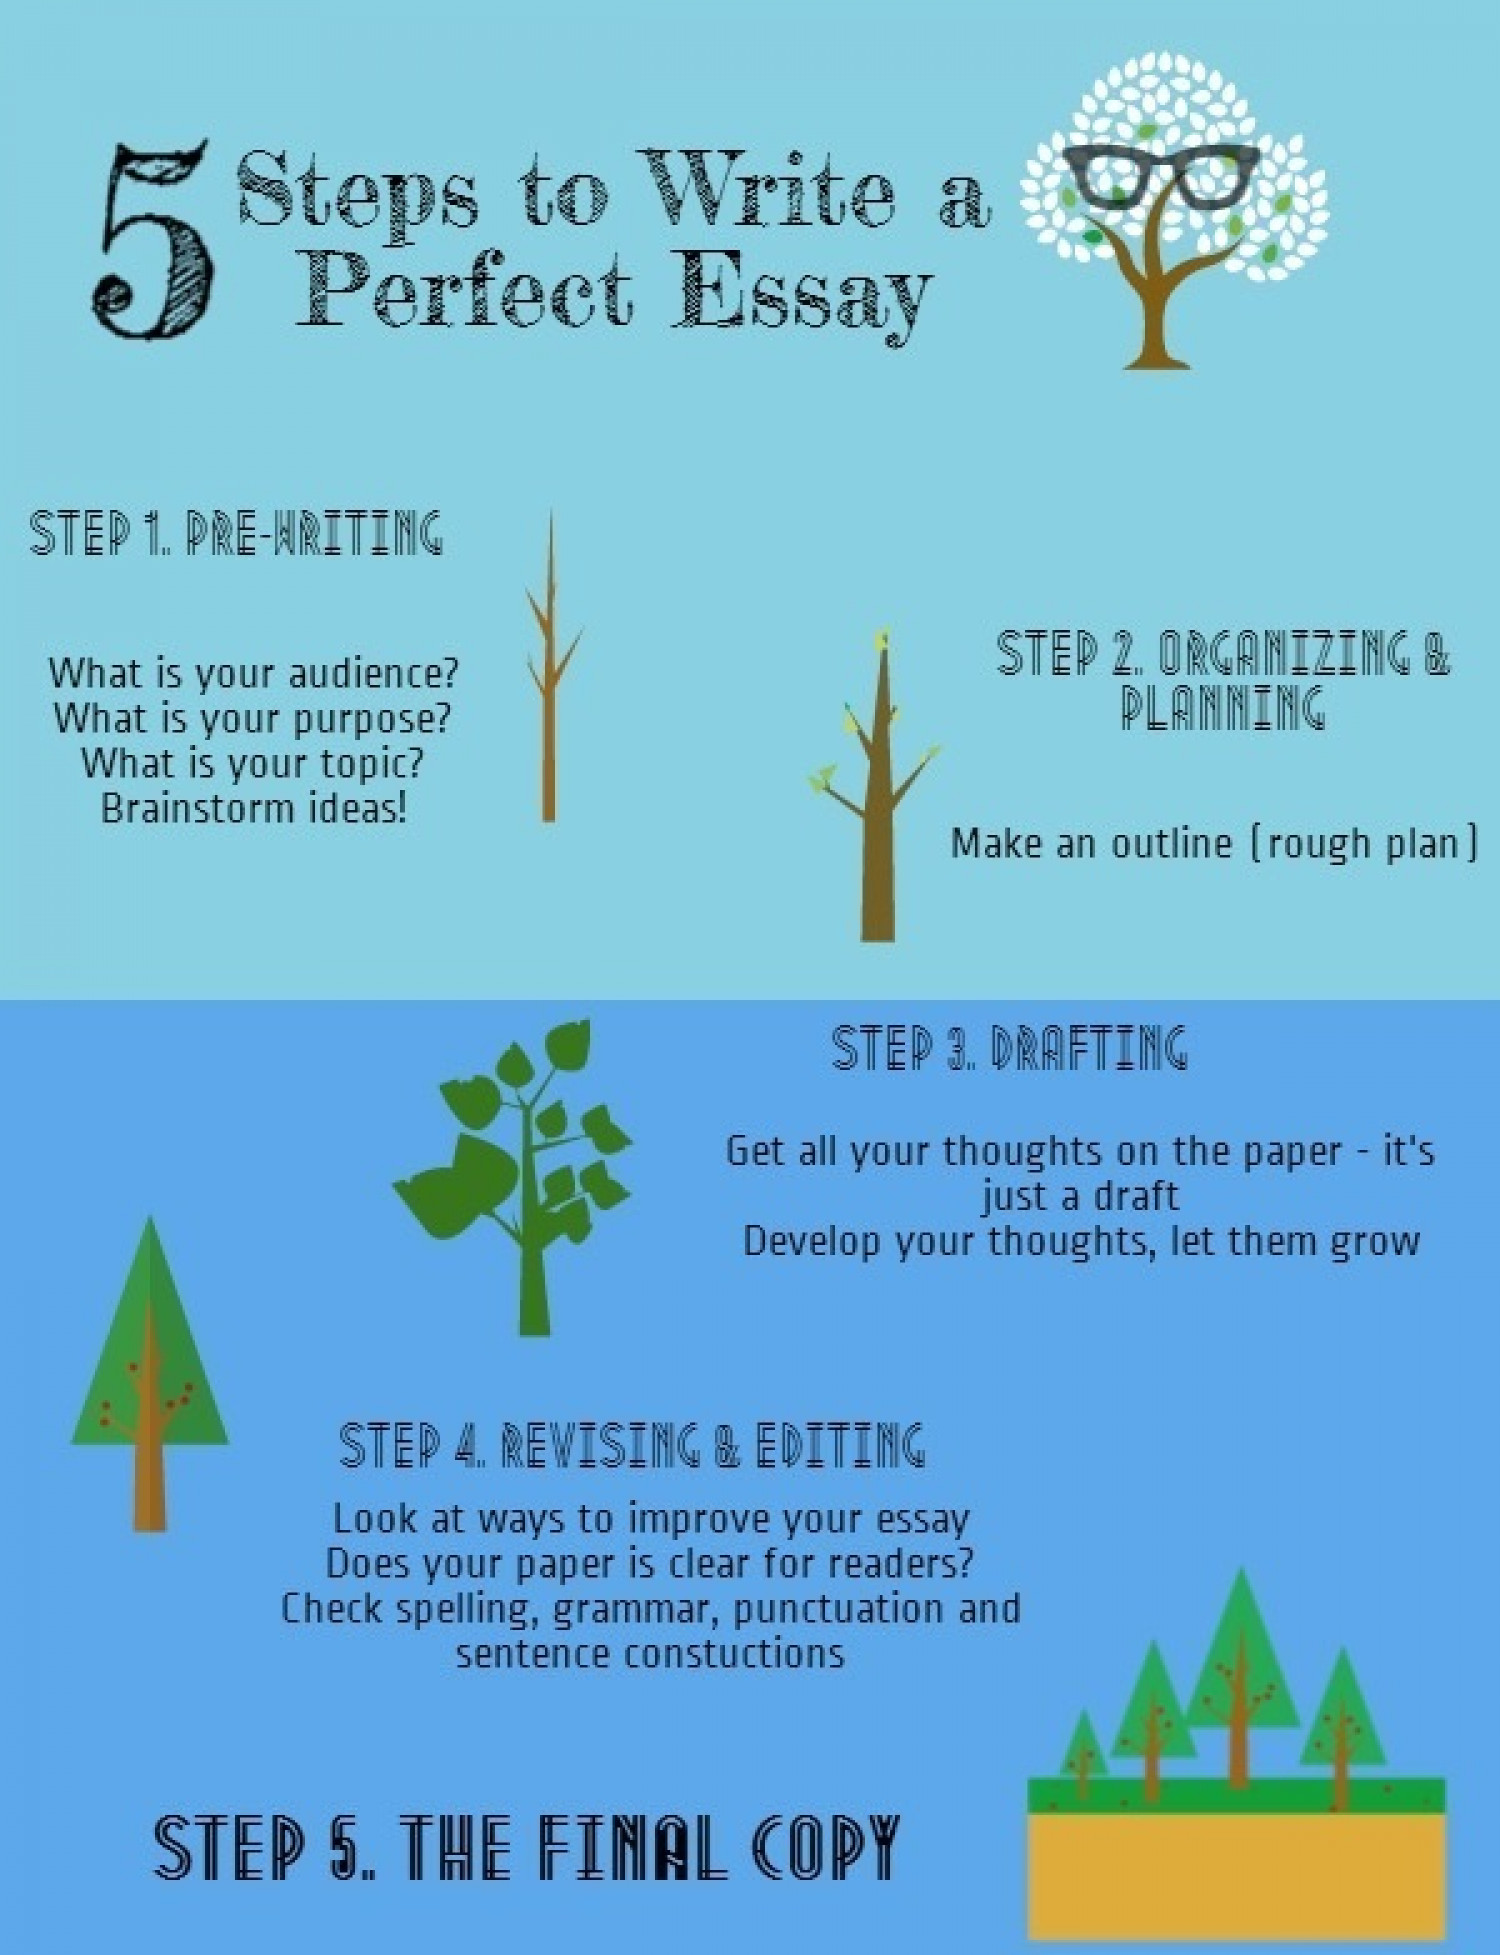 steps to write a perfect essay ly 5 steps to write a perfect essay infographic